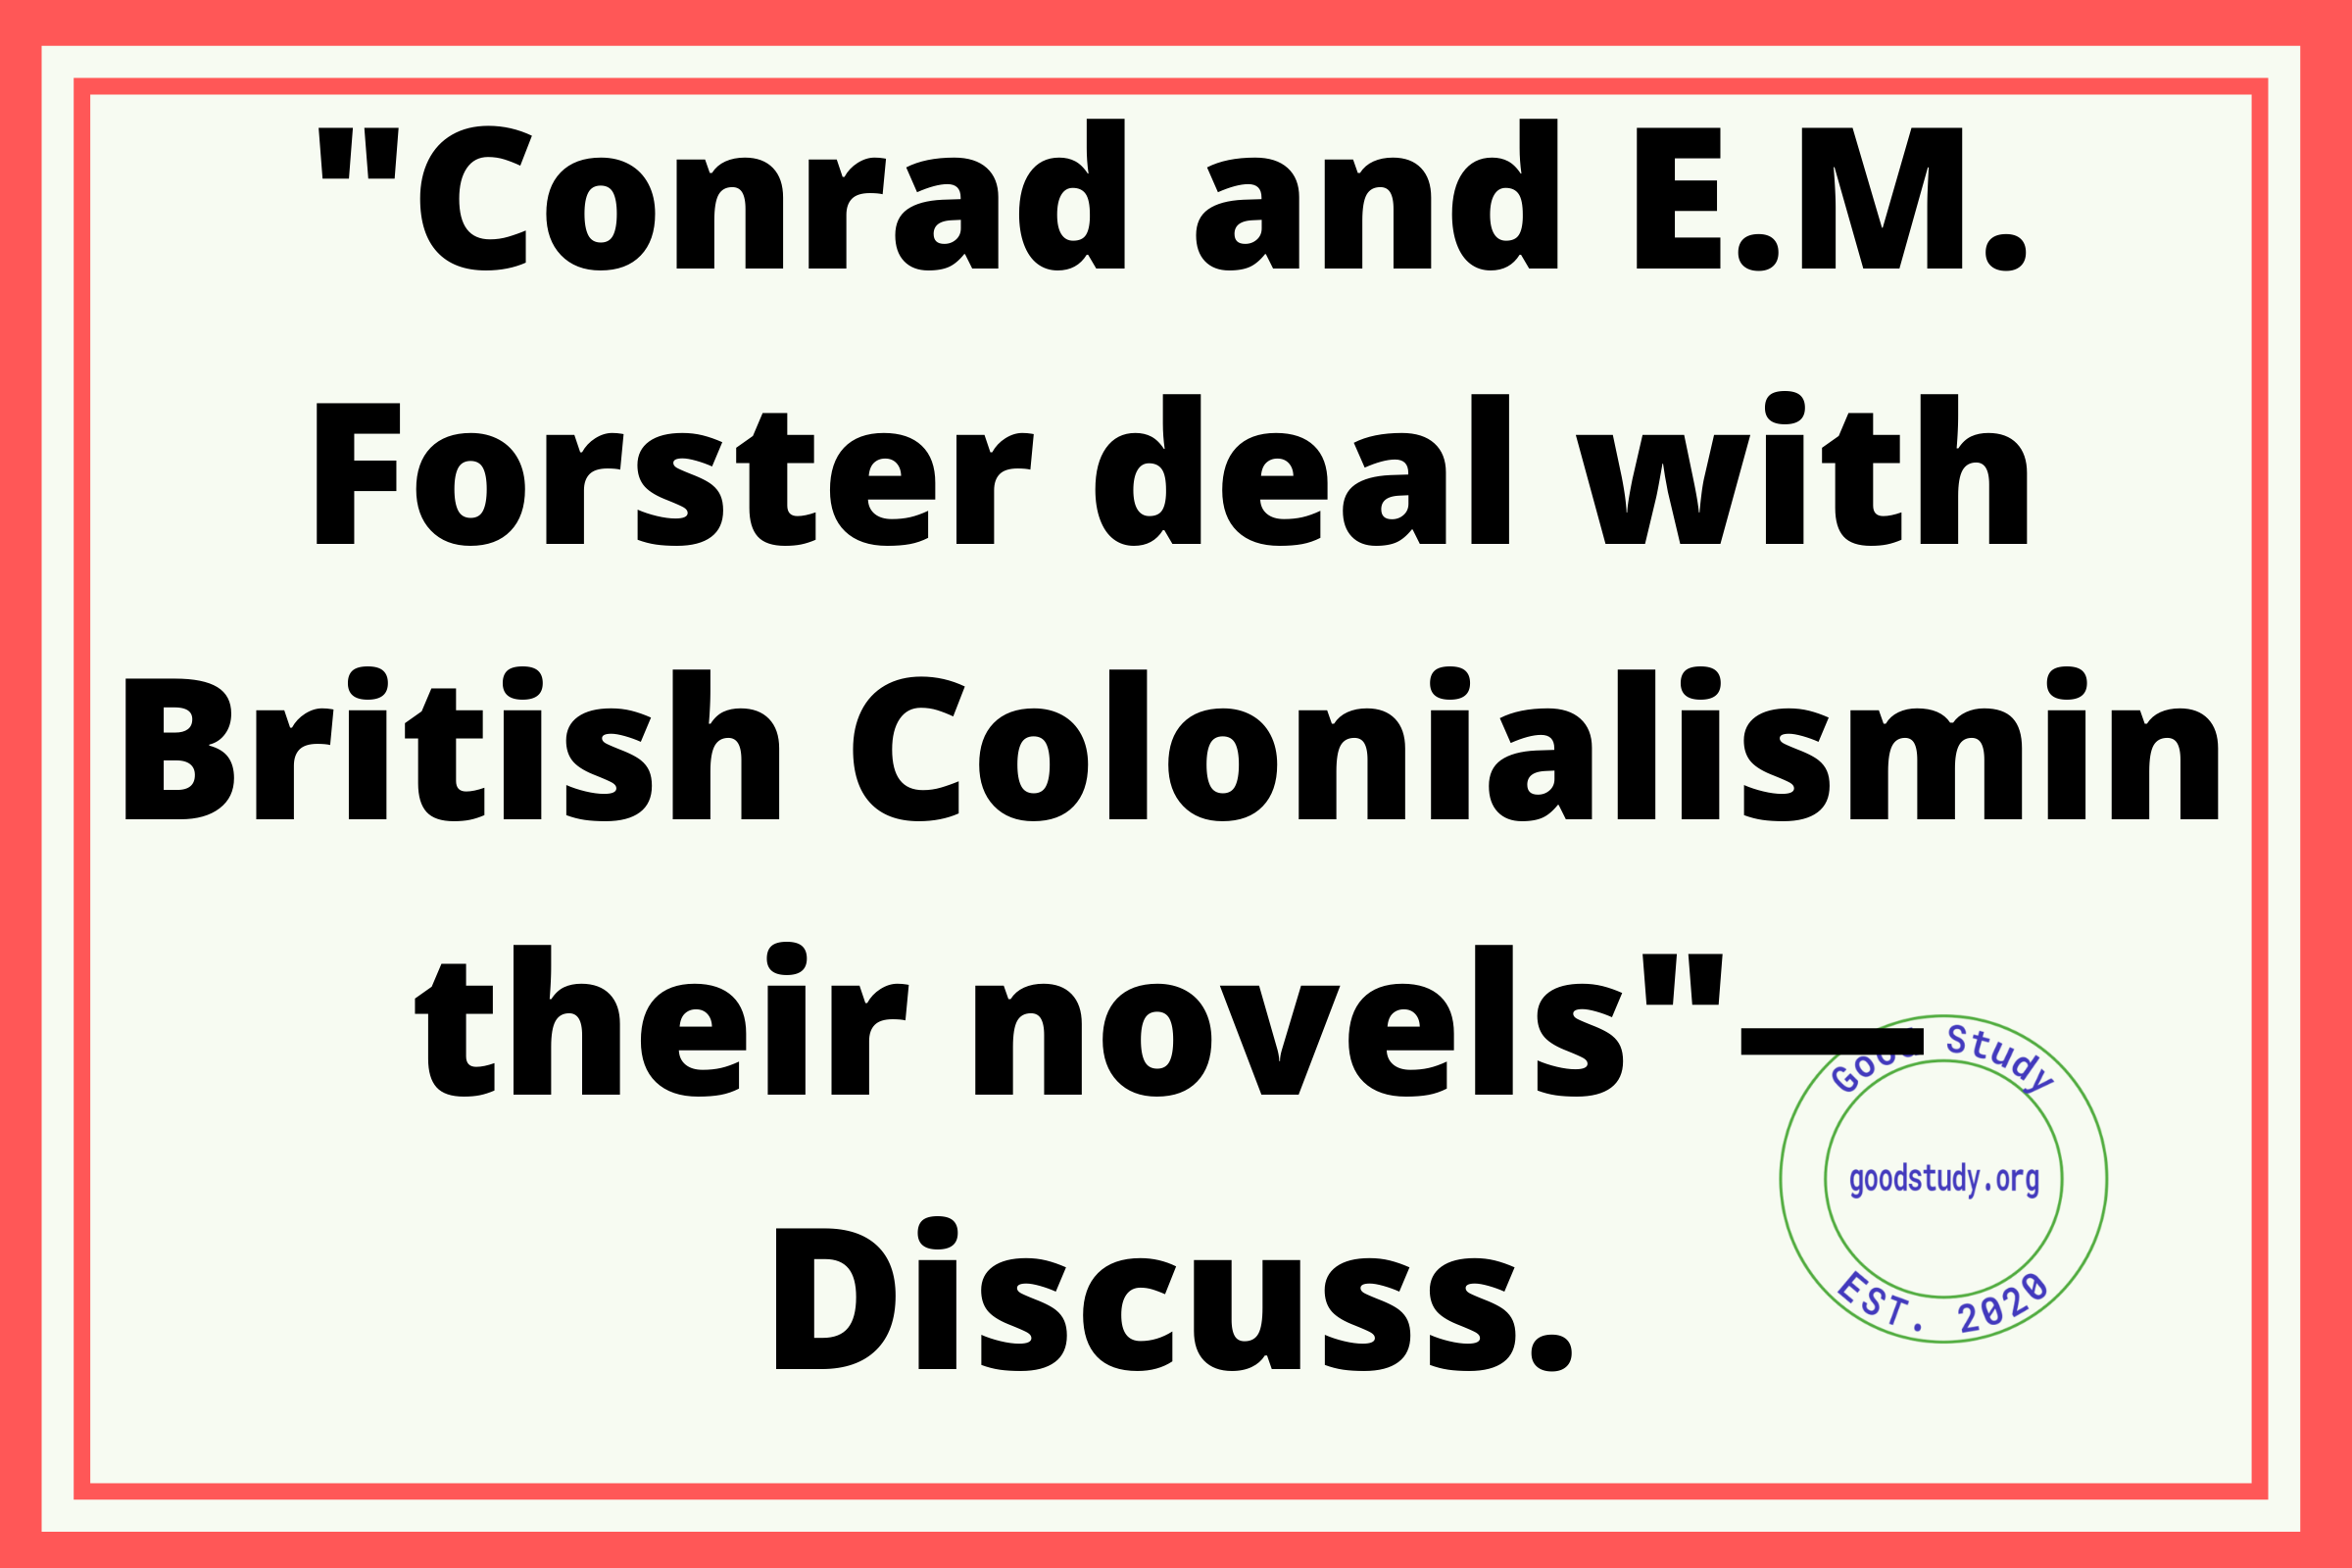 Conrad and E.M. Forster deal with British Colonialism in their novels